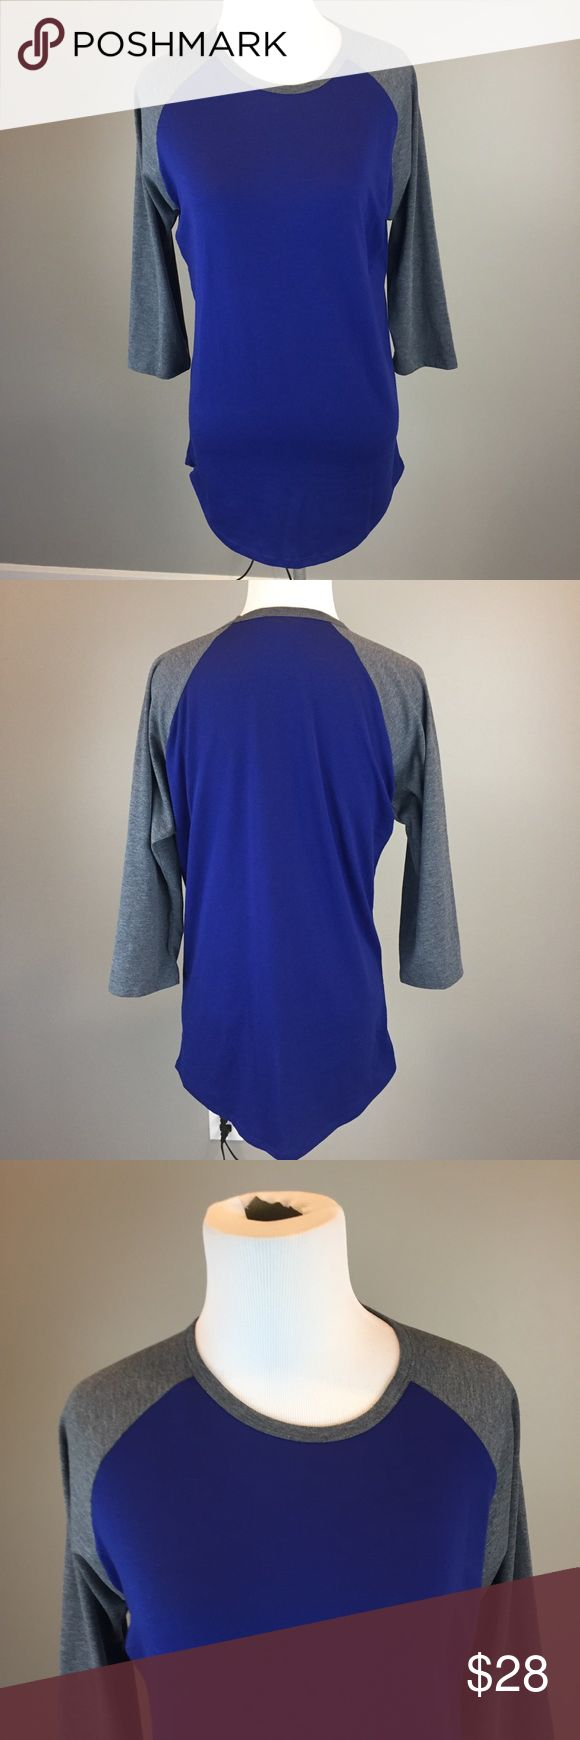 """LULAROE Gray Blue Randy Baseball 3/4 Sl Tee SZ S Measurements.  Armpit to armpit laying flat 21"""" Length from top of shoulder to bottom of shirt 31"""" Good pre owned condition. Comes from a smoke free home LuLaRoe Tops Tunics"""